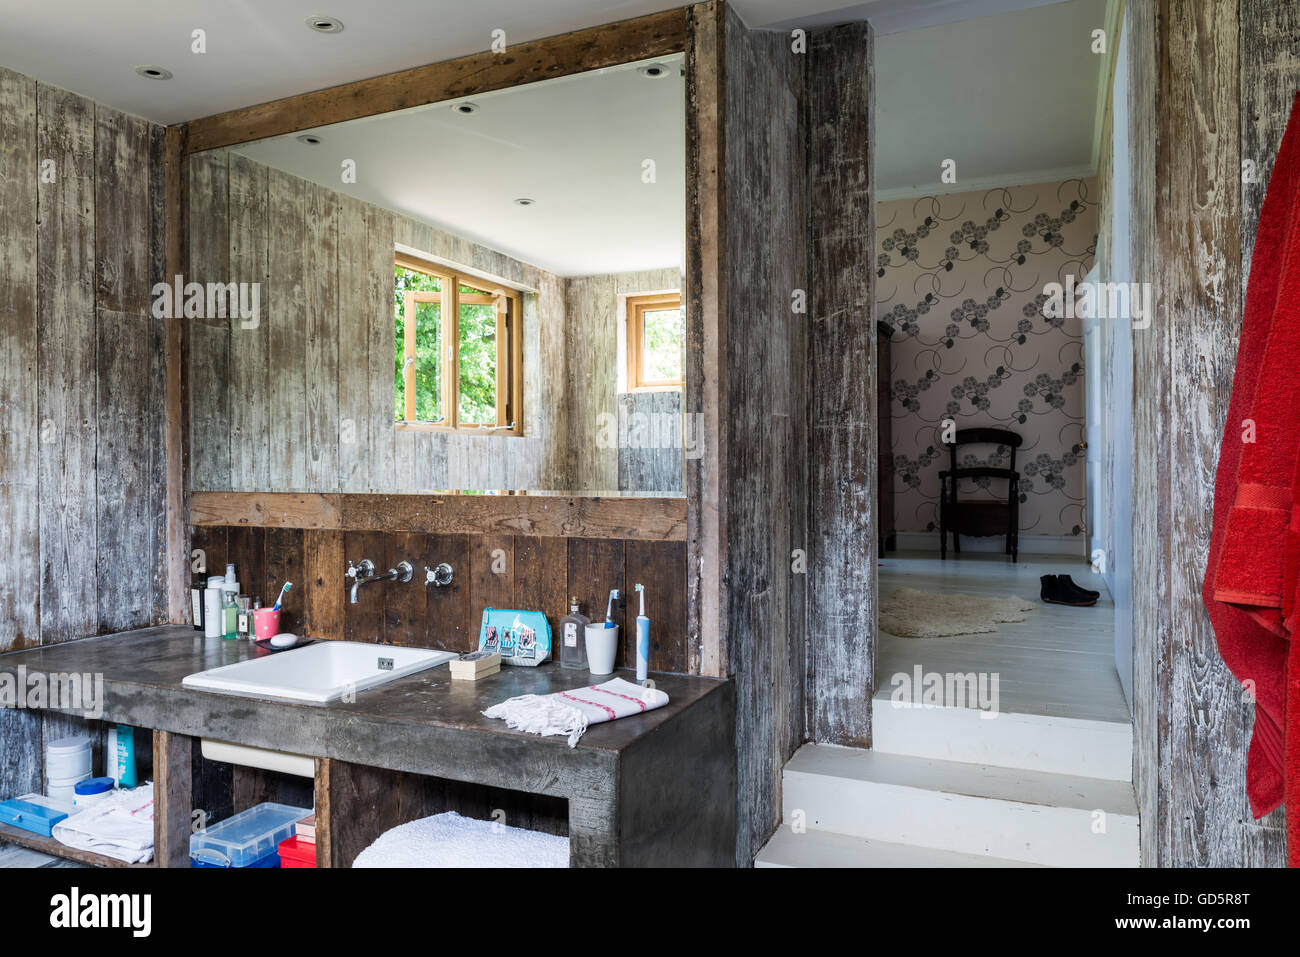 Polished concrete vanity unit in ensuite bathroom with walls lined with recycled floorboards Stock Photo